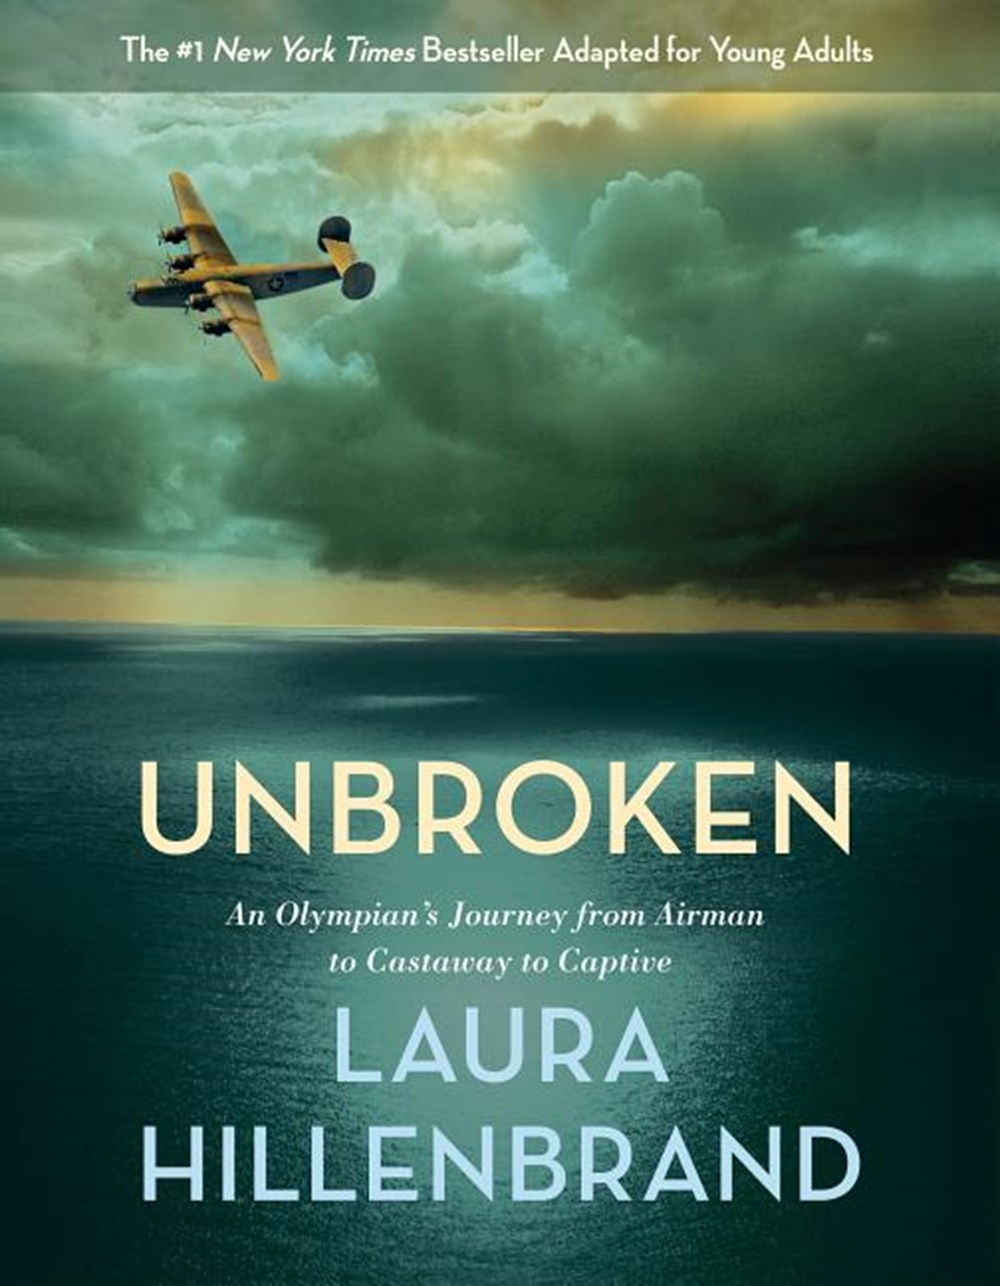 Unbroken An Olympian's Journey from Airman to Castaway to Captive (Young Adult Adaptation)